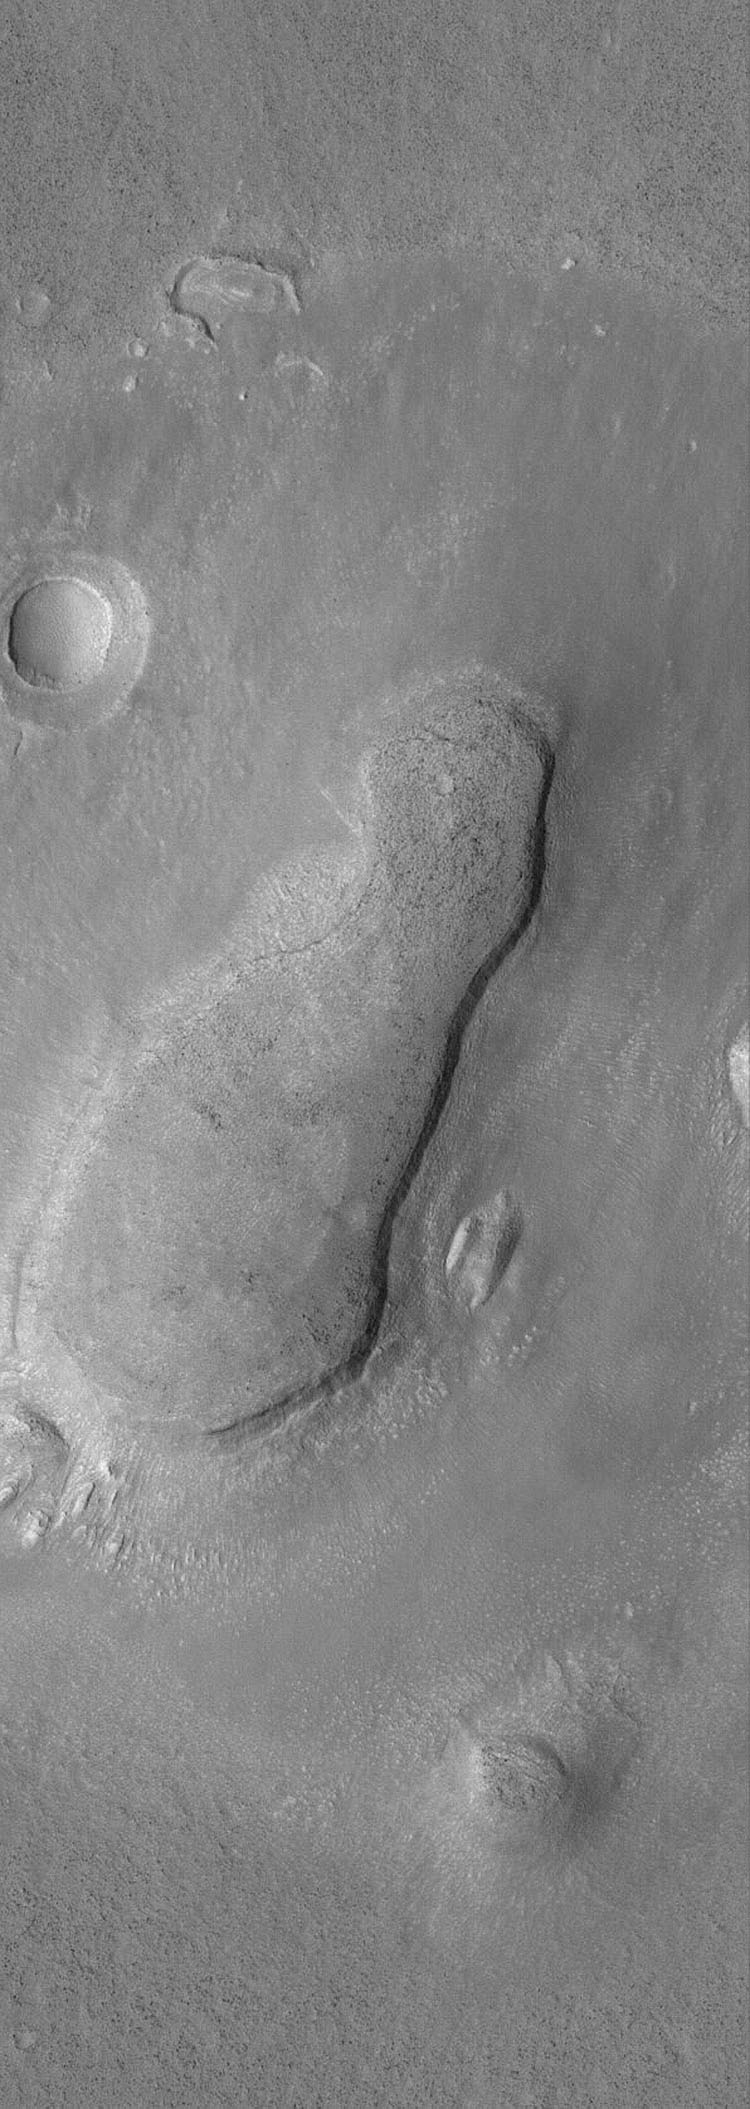 This image from NASA's Mars Global Surveyor shows a mesa and an impact grater just east of Phlegra Montes. The mesa is the eroded remnant of a once more extensive terrain. An apron of material surrounds the mesa.